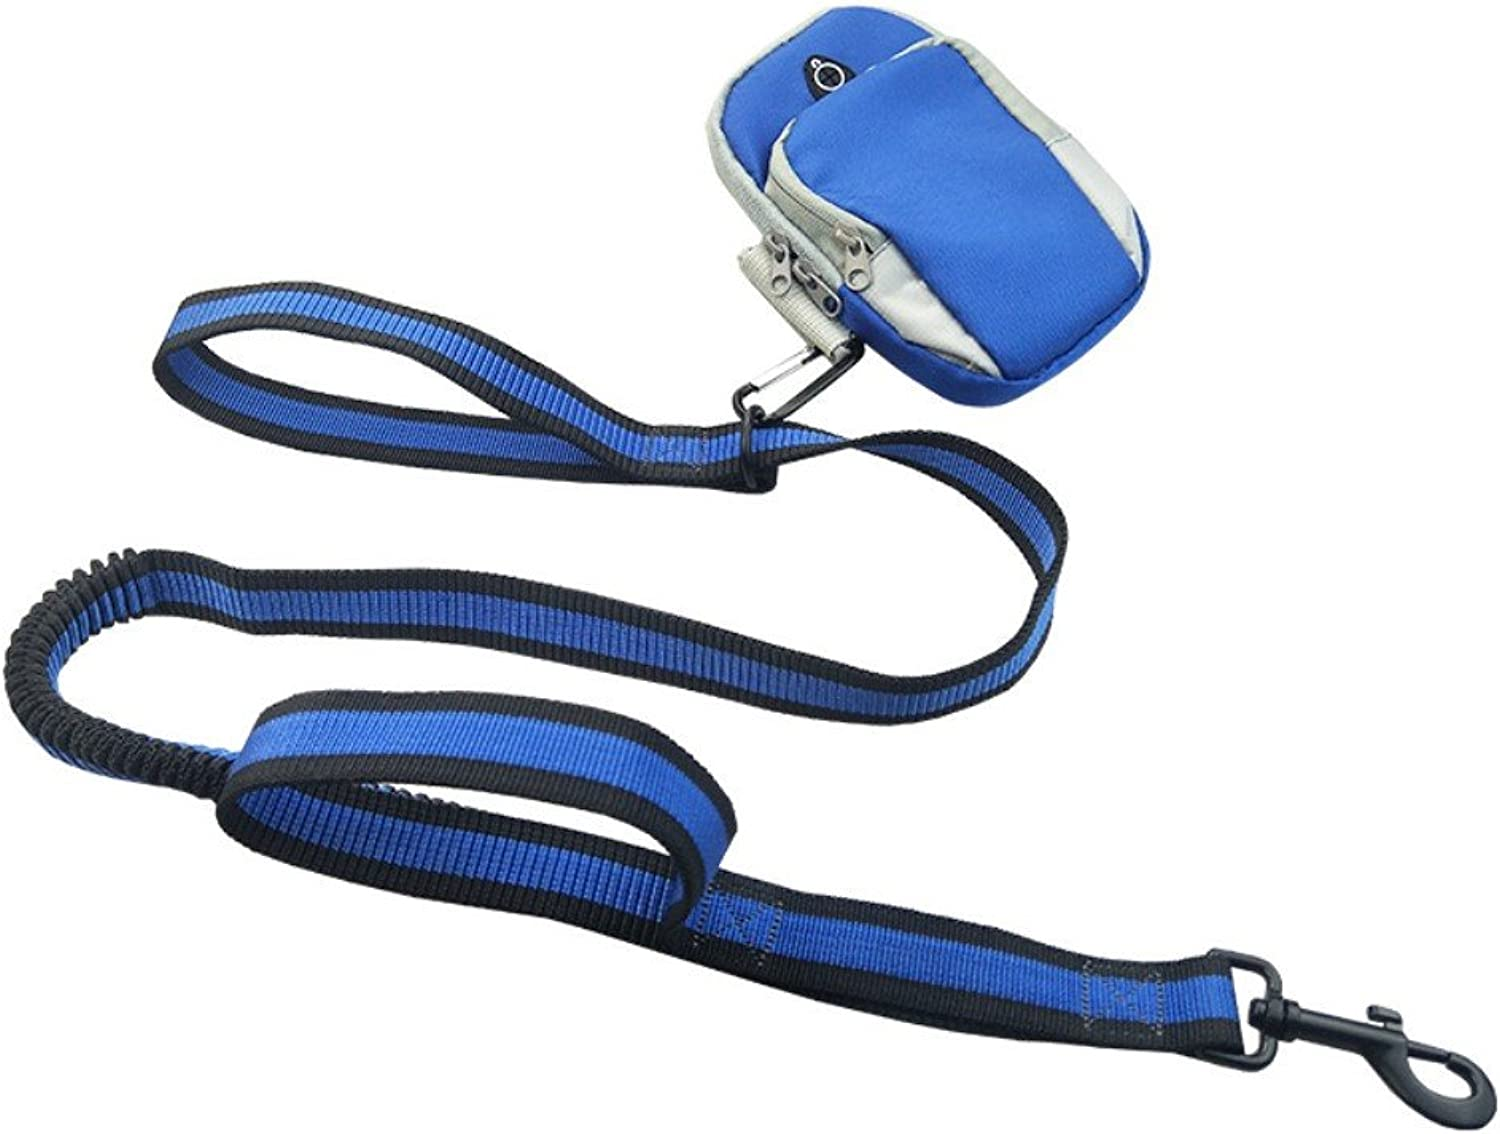 DXABLE Hand Free Dog Leashes, Waterproof Breathable Arm Bags Running Jogging Dog Leash Reflective Elastic Adjustable Rope with Set (bluee)